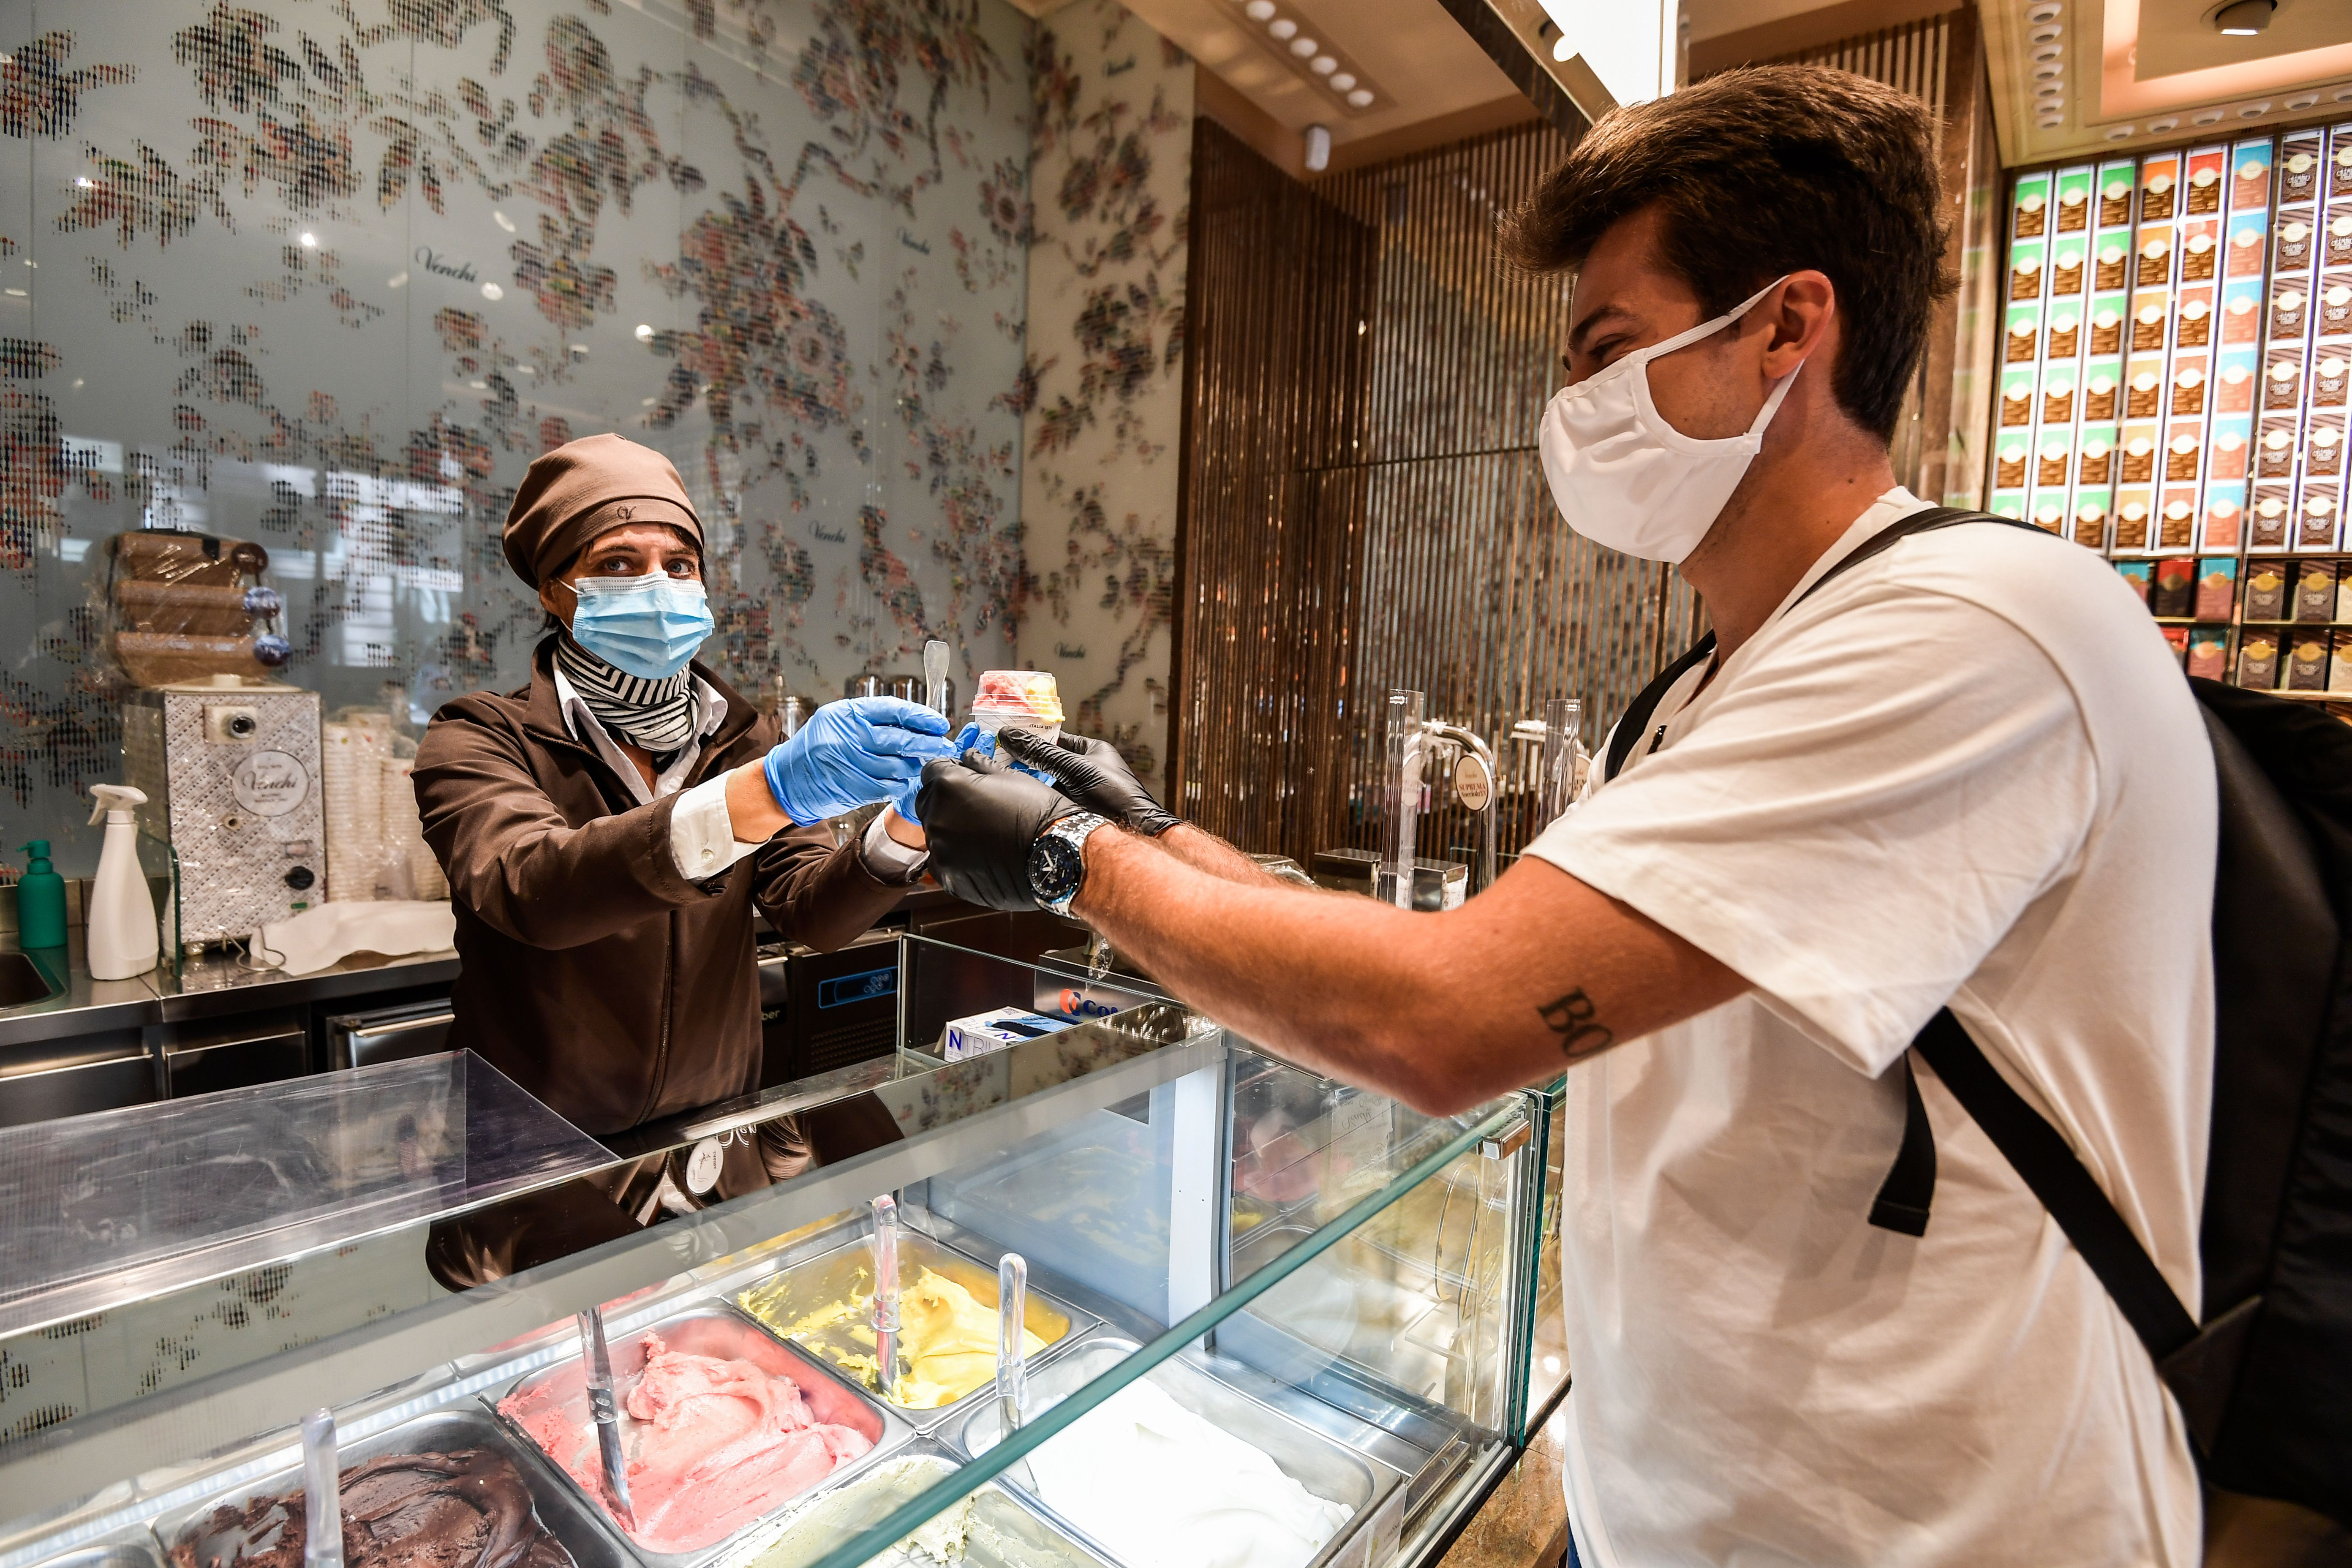 A customer buys takeaway ice cream at the Venchi ice cream parlour on May 4, 2020 in Milan as Italy starts to ease its lockdown. (Photo by MIGUEL MEDINA/AFP via Getty Images)